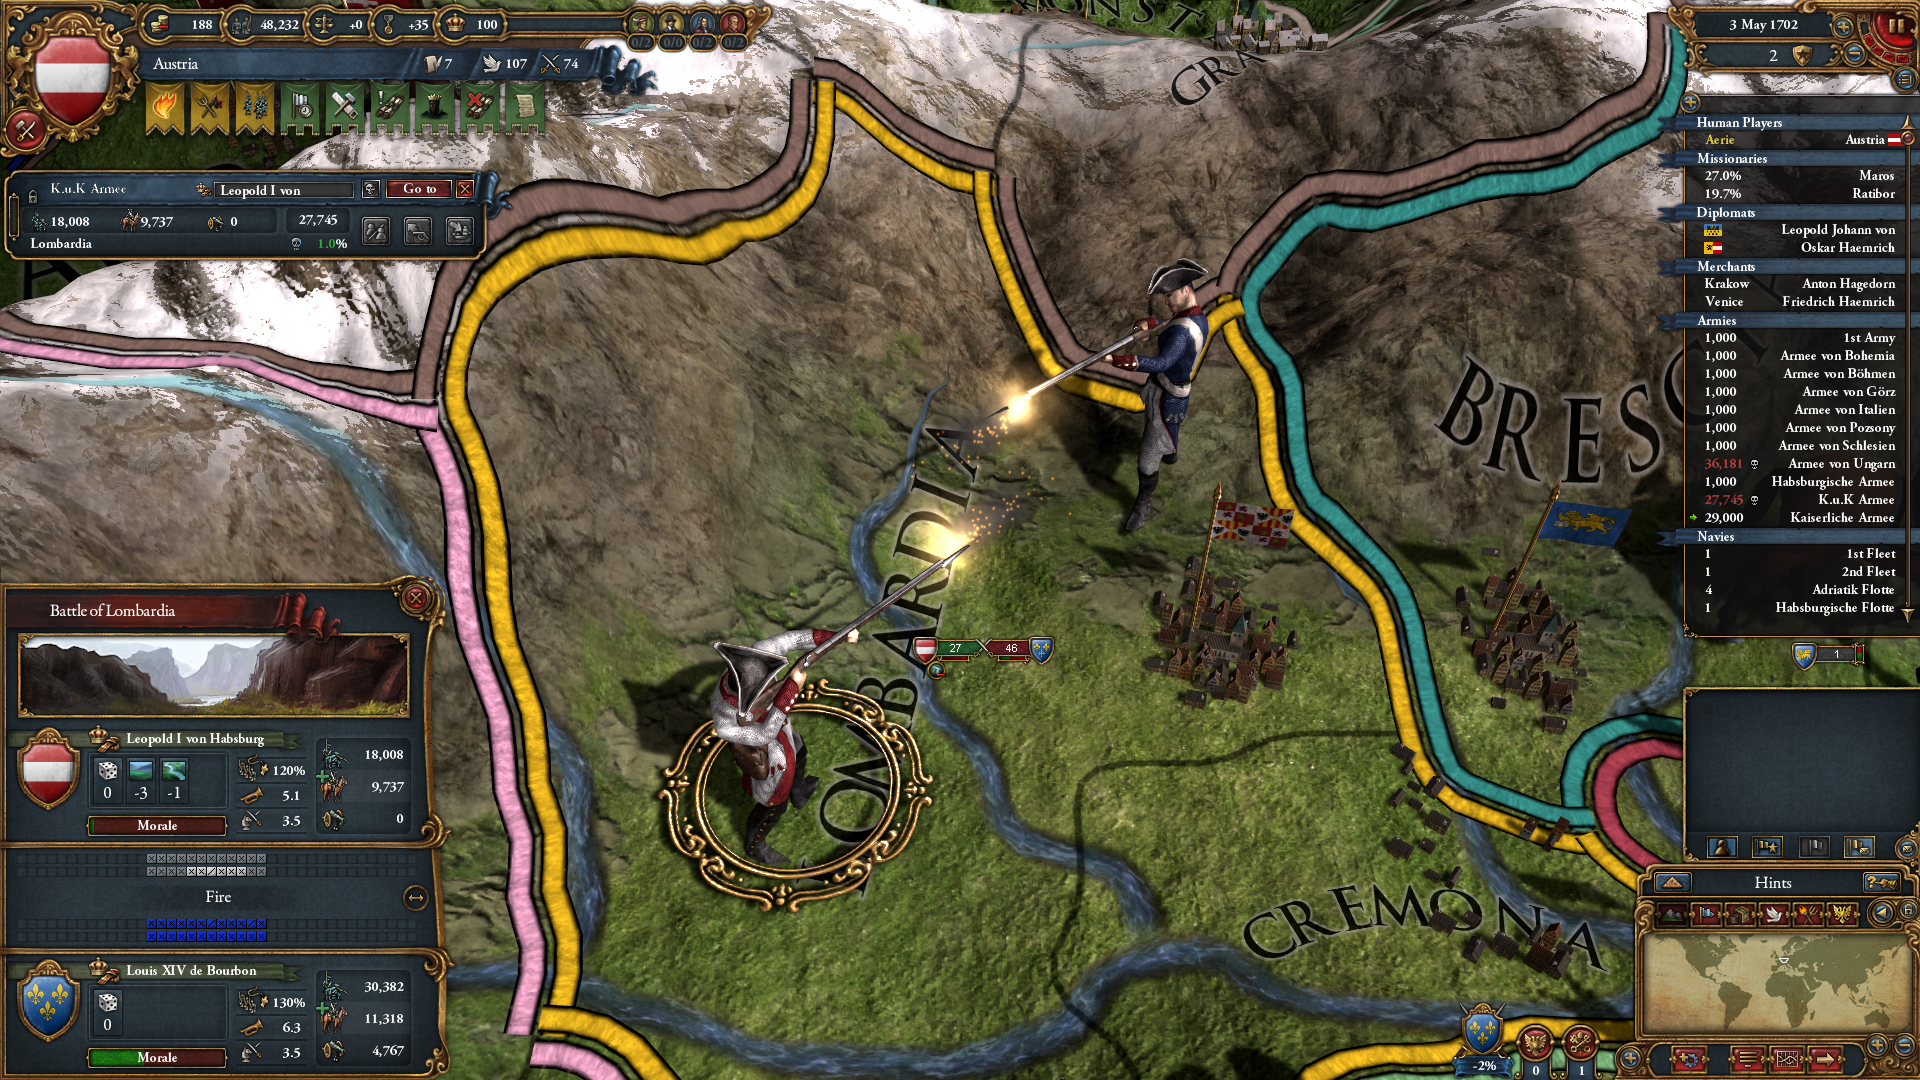 Europa Universalis IV Preview for PC